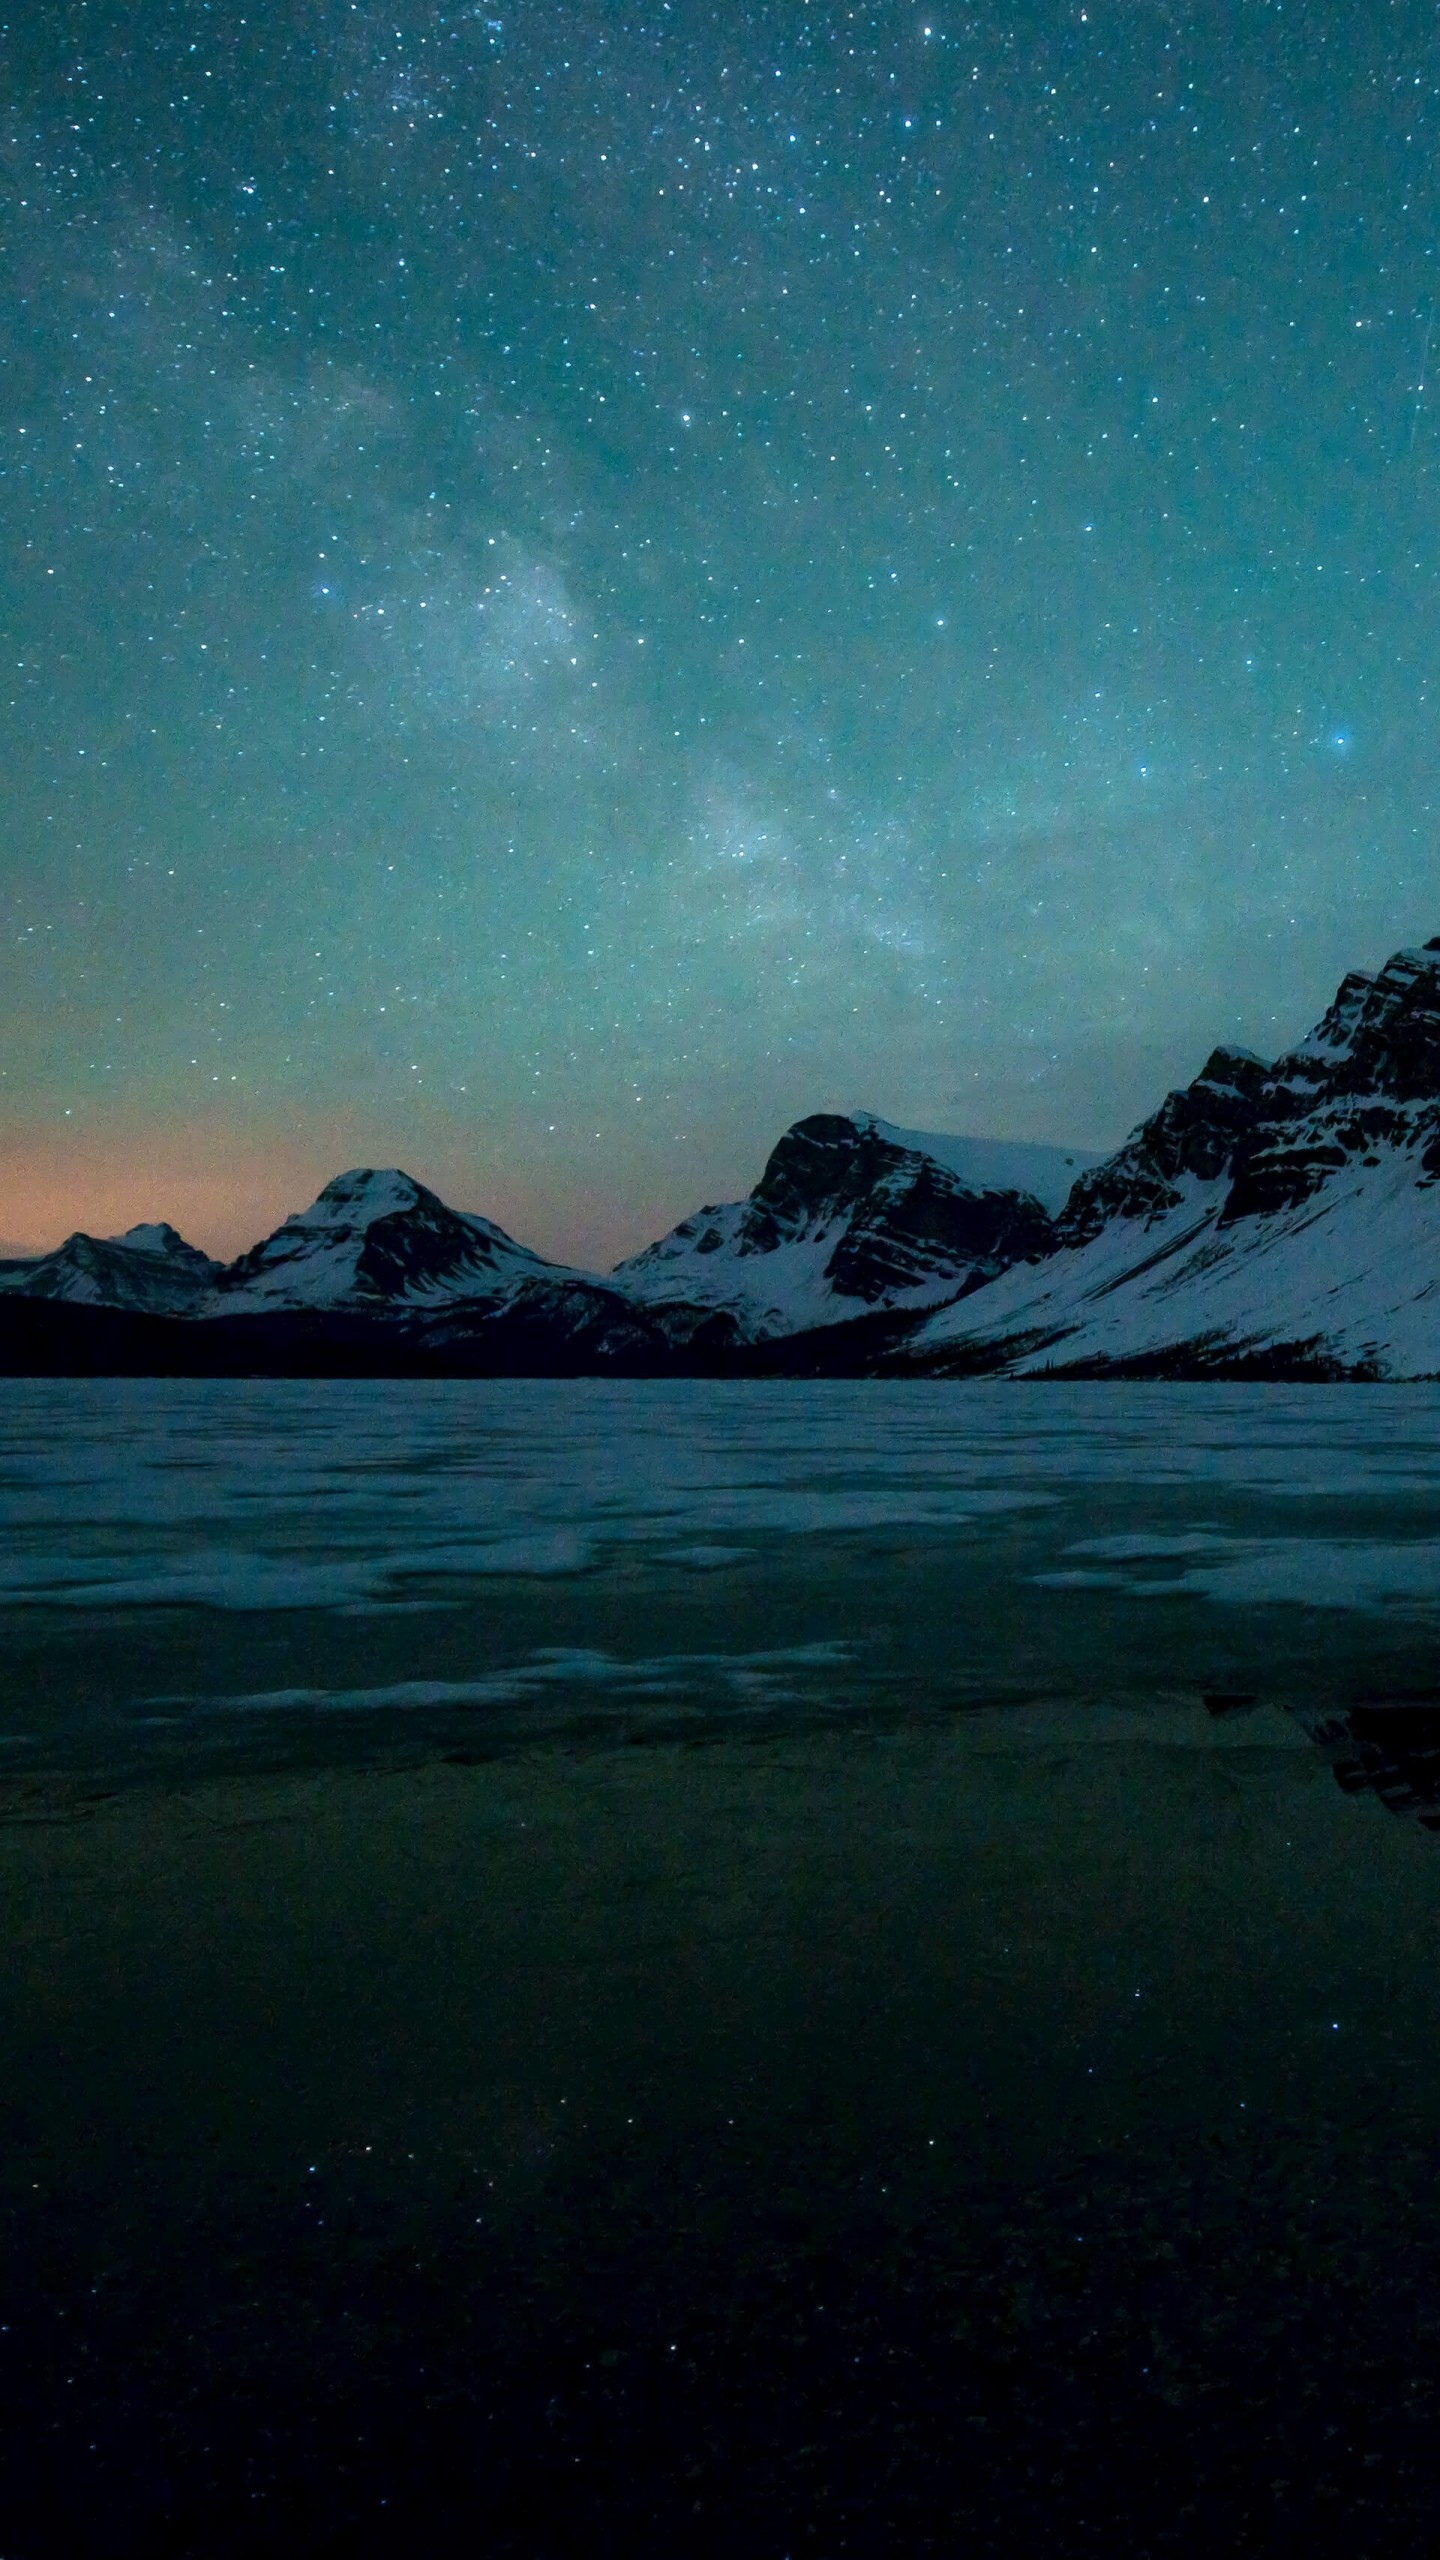 Milky Way over Bow Lake, Alberta, Canada Wallpaper for SAMSUNG Galaxy Note 4